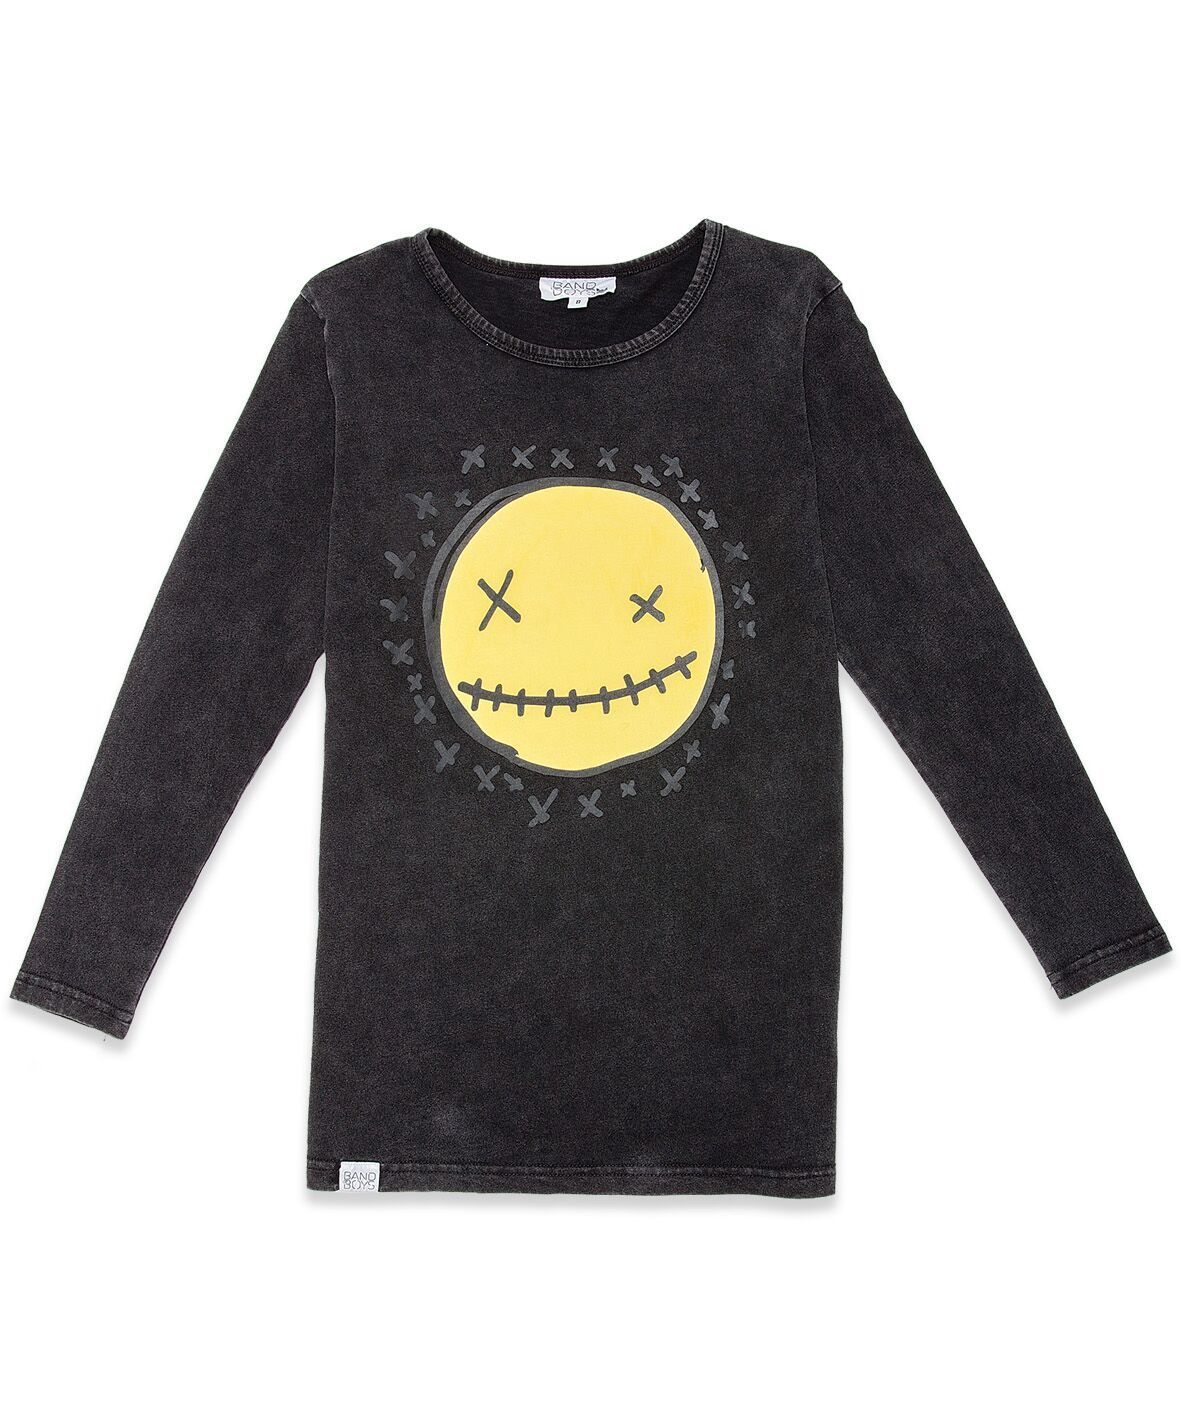 BOB LS Tee Smiley Vintage Black